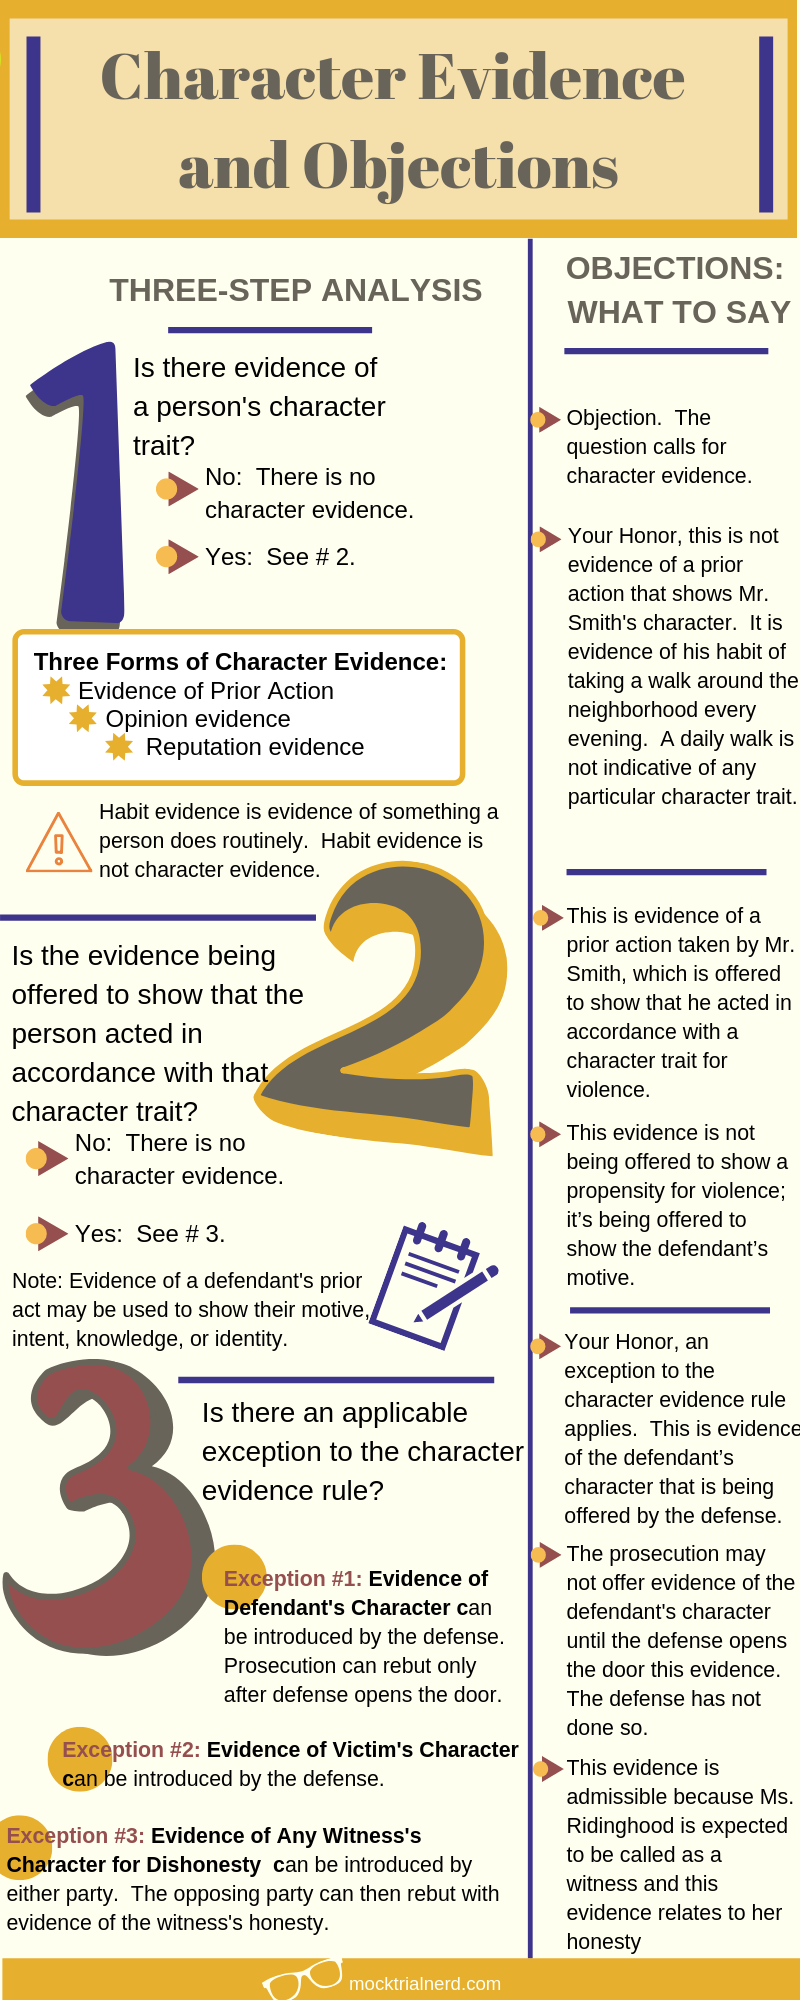 Character Evidence Infographic